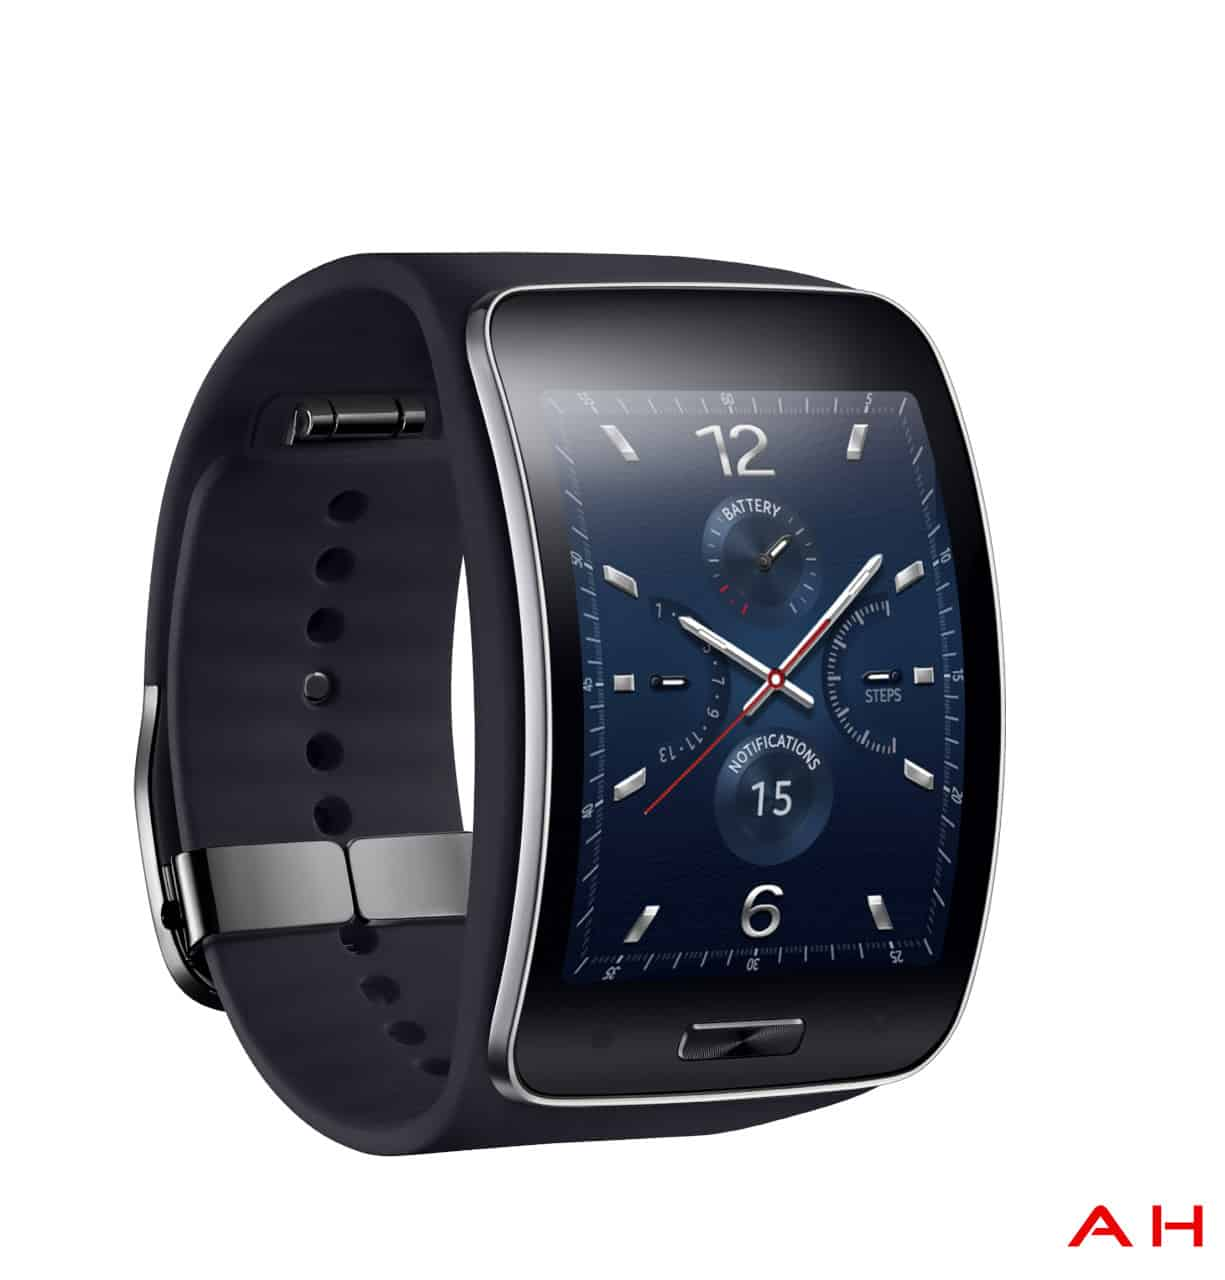 AH Primetime: Samsung Gear S Smartwatch Has Arrived But Where Is The Android Wear?